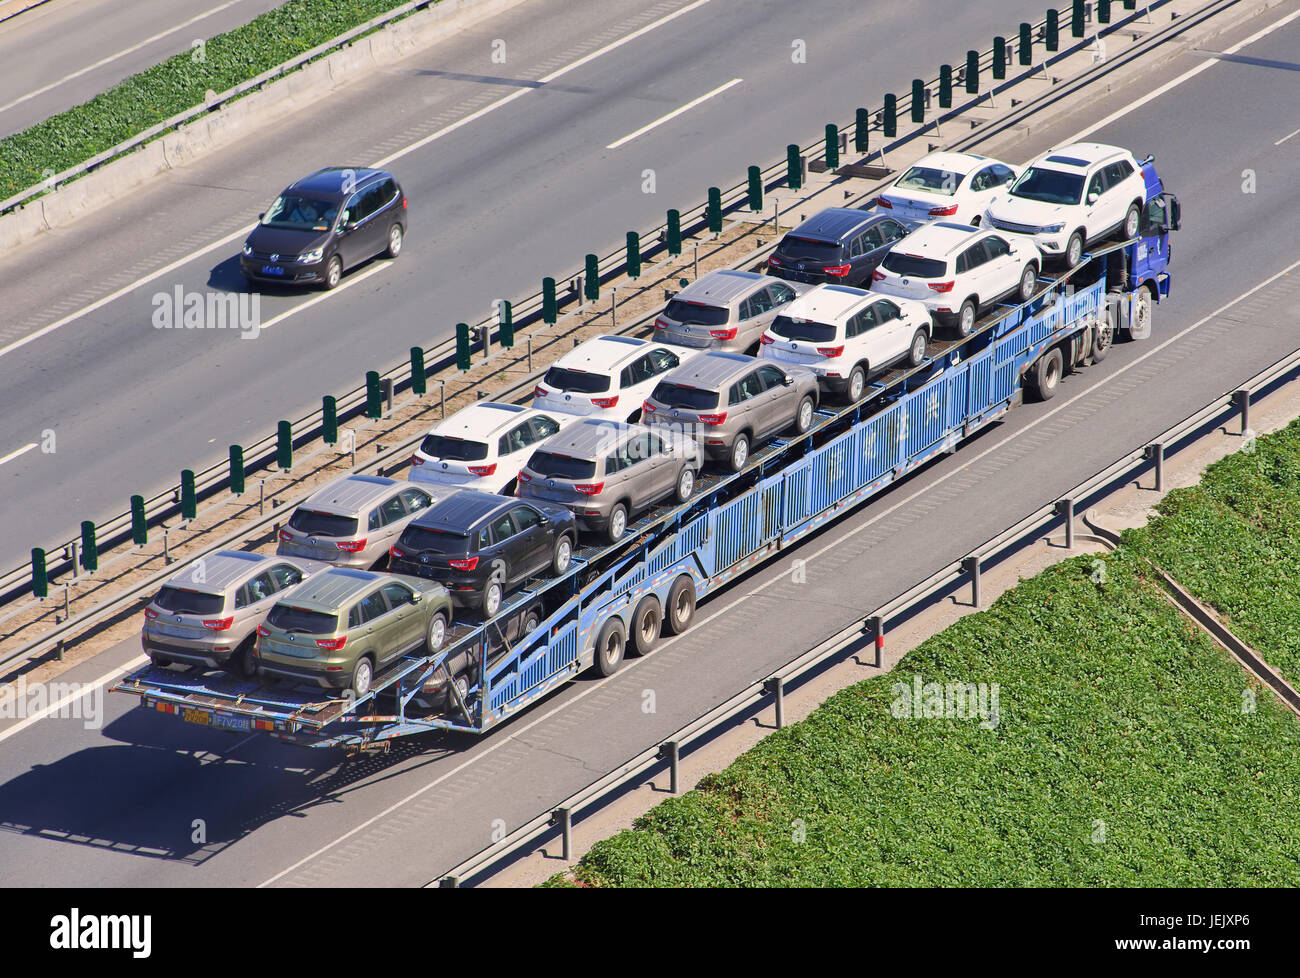 Auto Carriers Stock Photos Amp Auto Carriers Stock Images